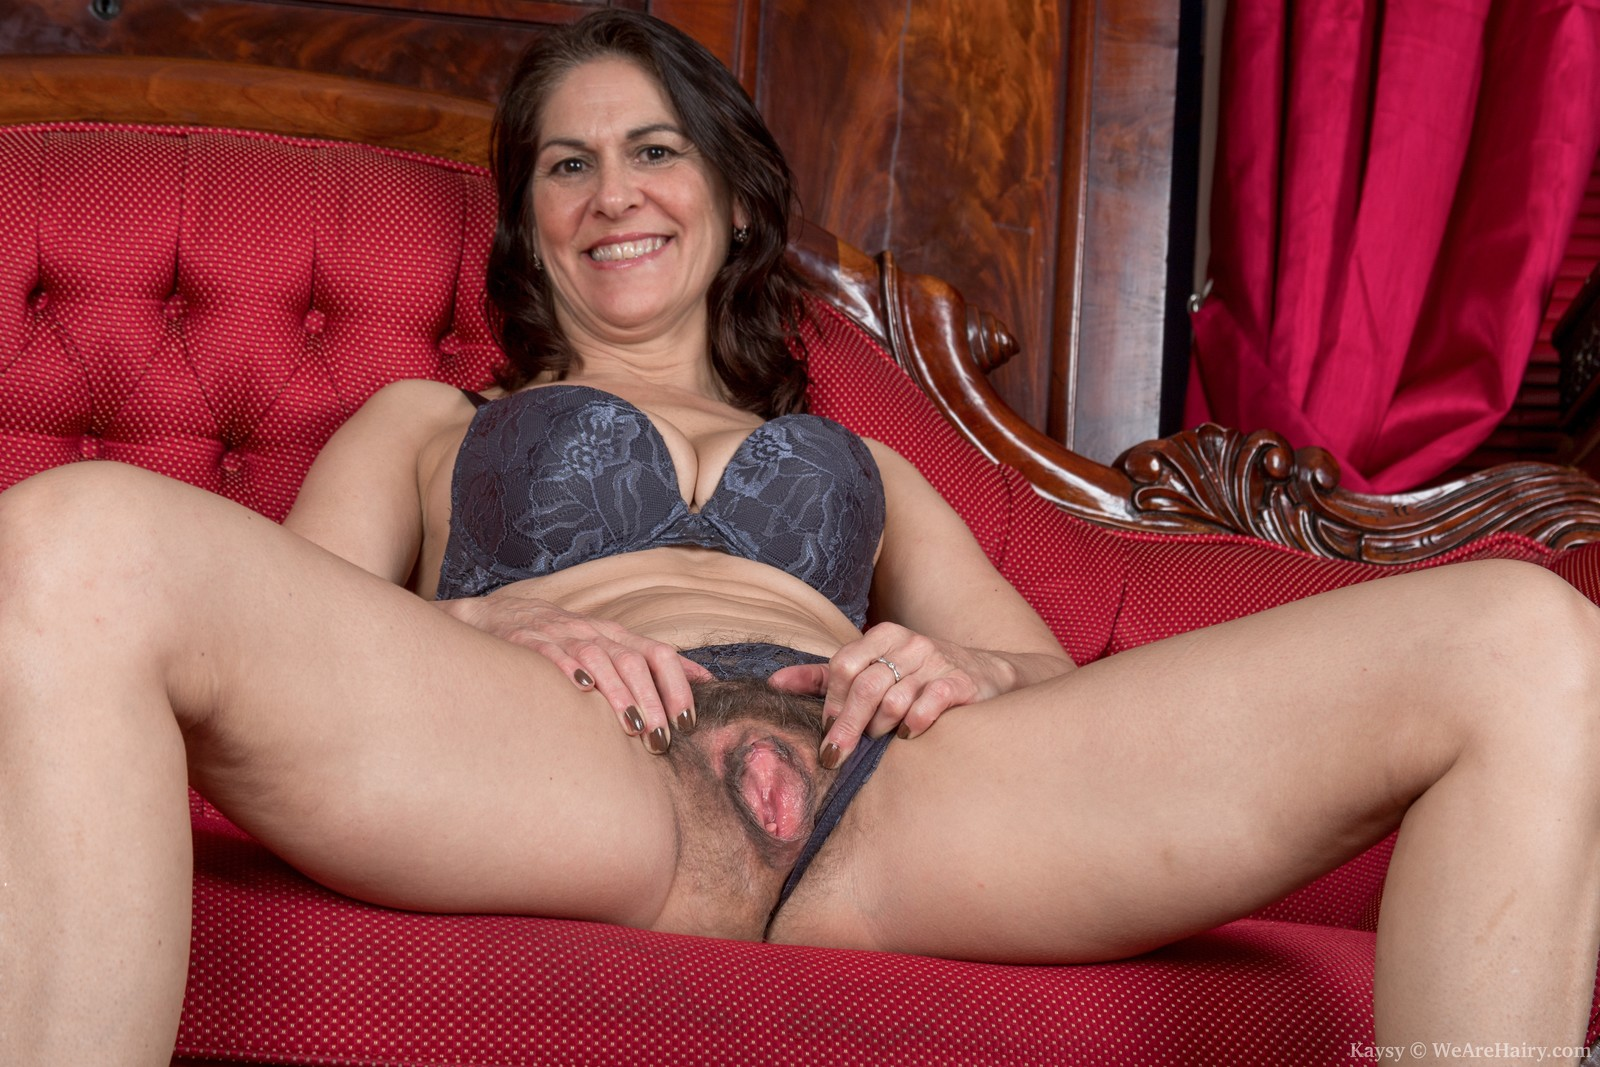 hairy mature mom | the hairy lady blog